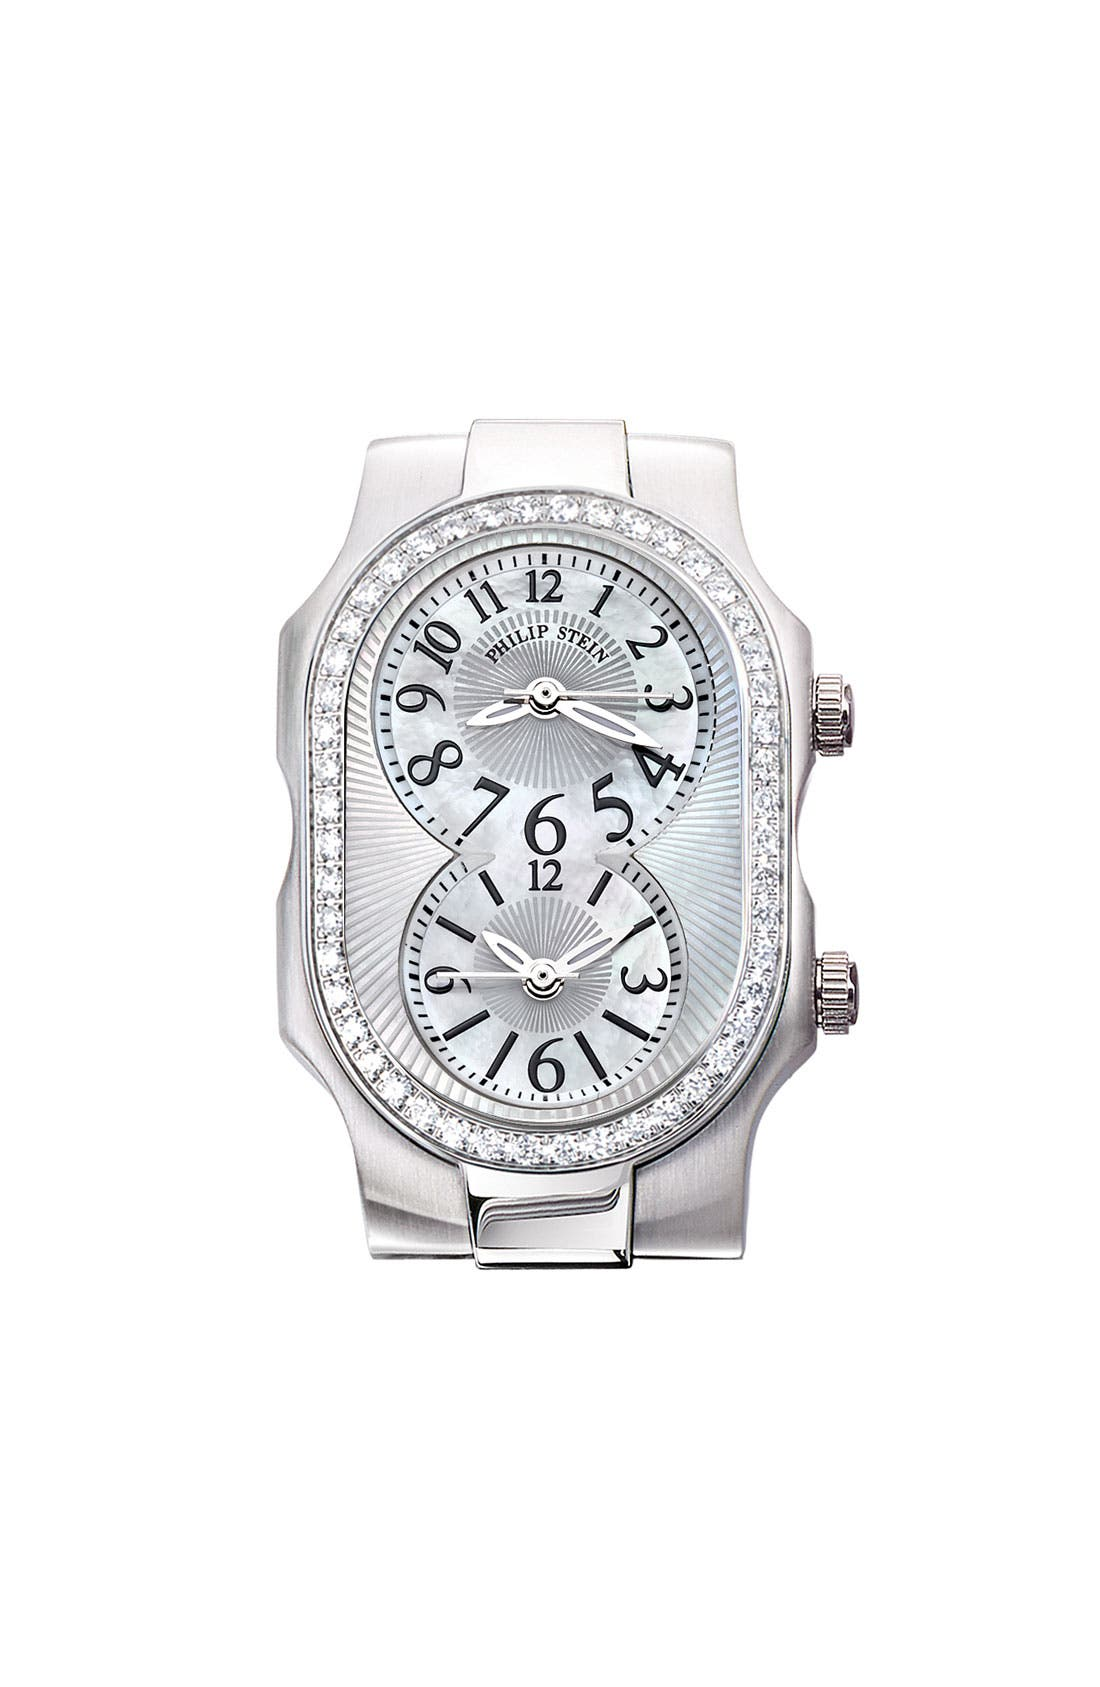 Alternate Image 1 Selected - Philip Stein® 'Signature' Small Diamond & Mother-of-Pearl Watch Case